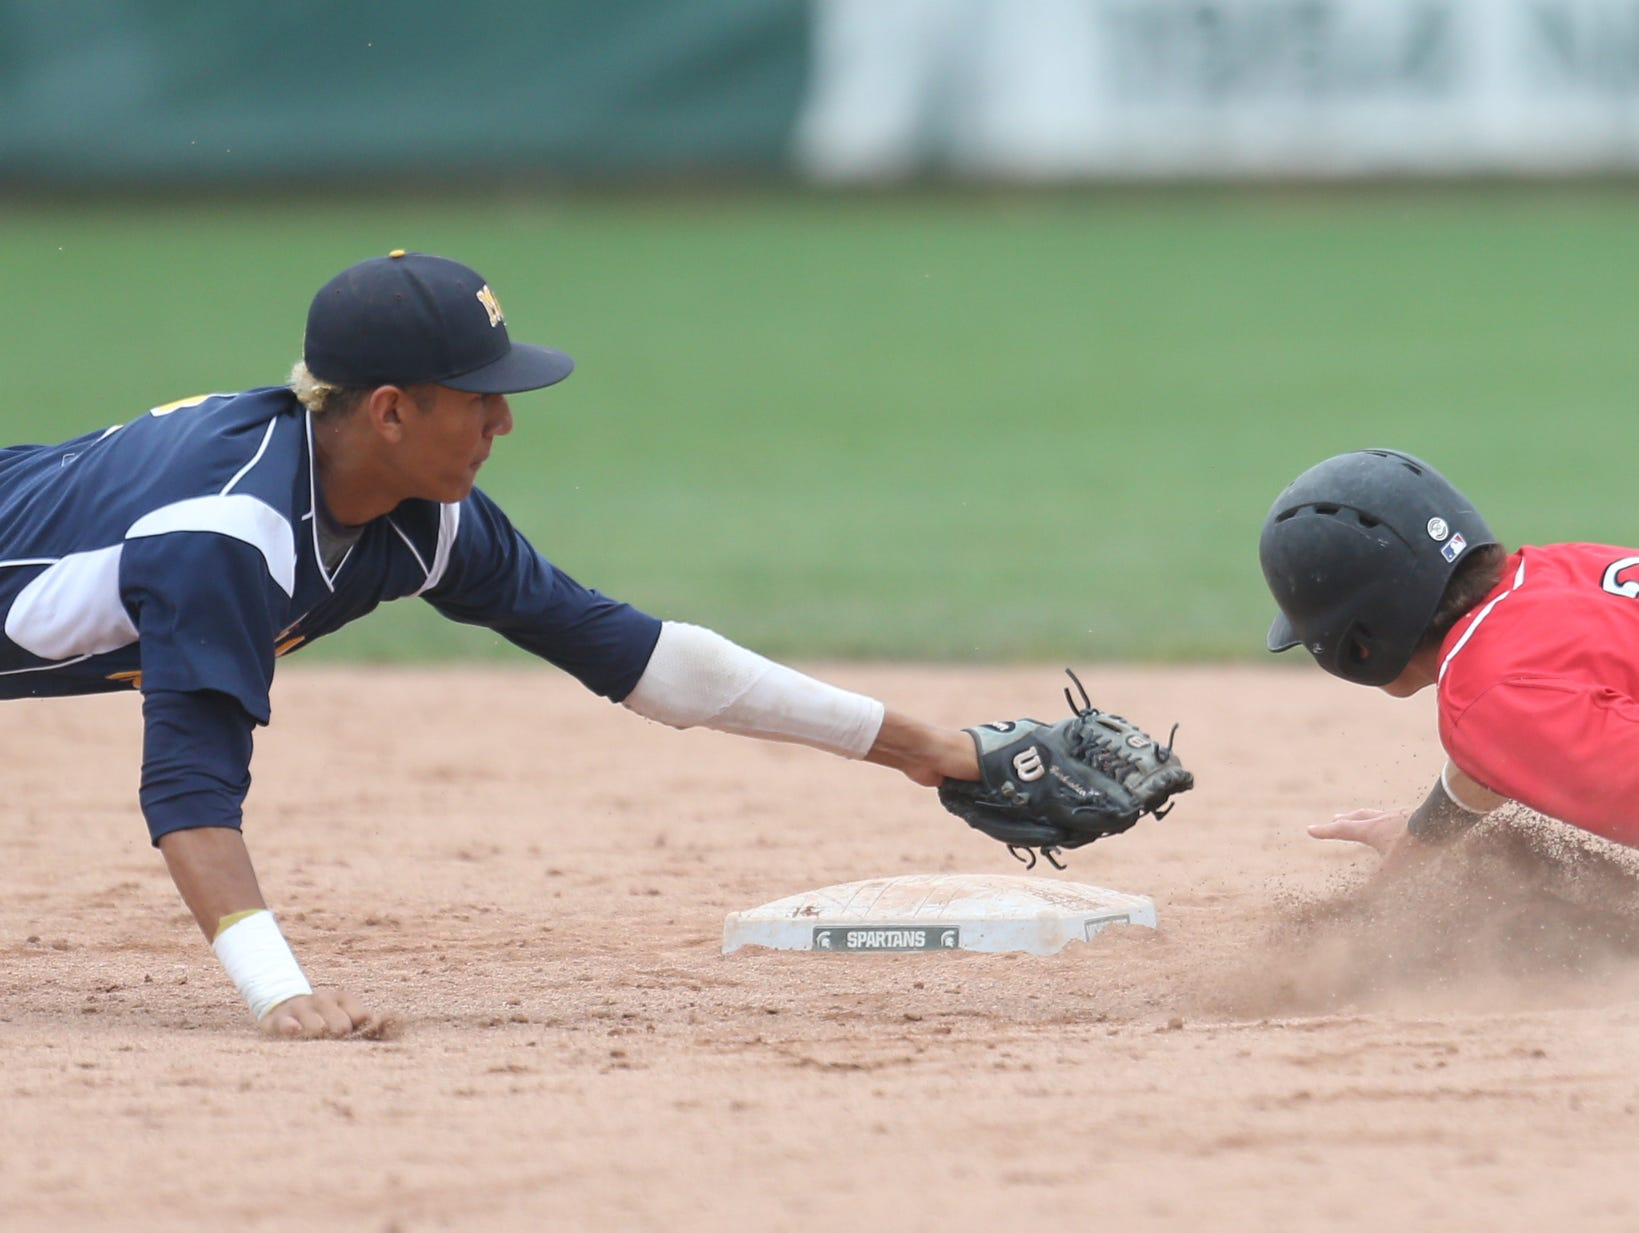 Orchard Lake St. Mary's baserunner Griffin Sheposh steals second against Mt. Pleasant's Obie Ricumstrict in the baseball Div. 2 MHSAA state championship on Saturday, June 13, 2015 at McLane Baseball Stadium in East Lansing.